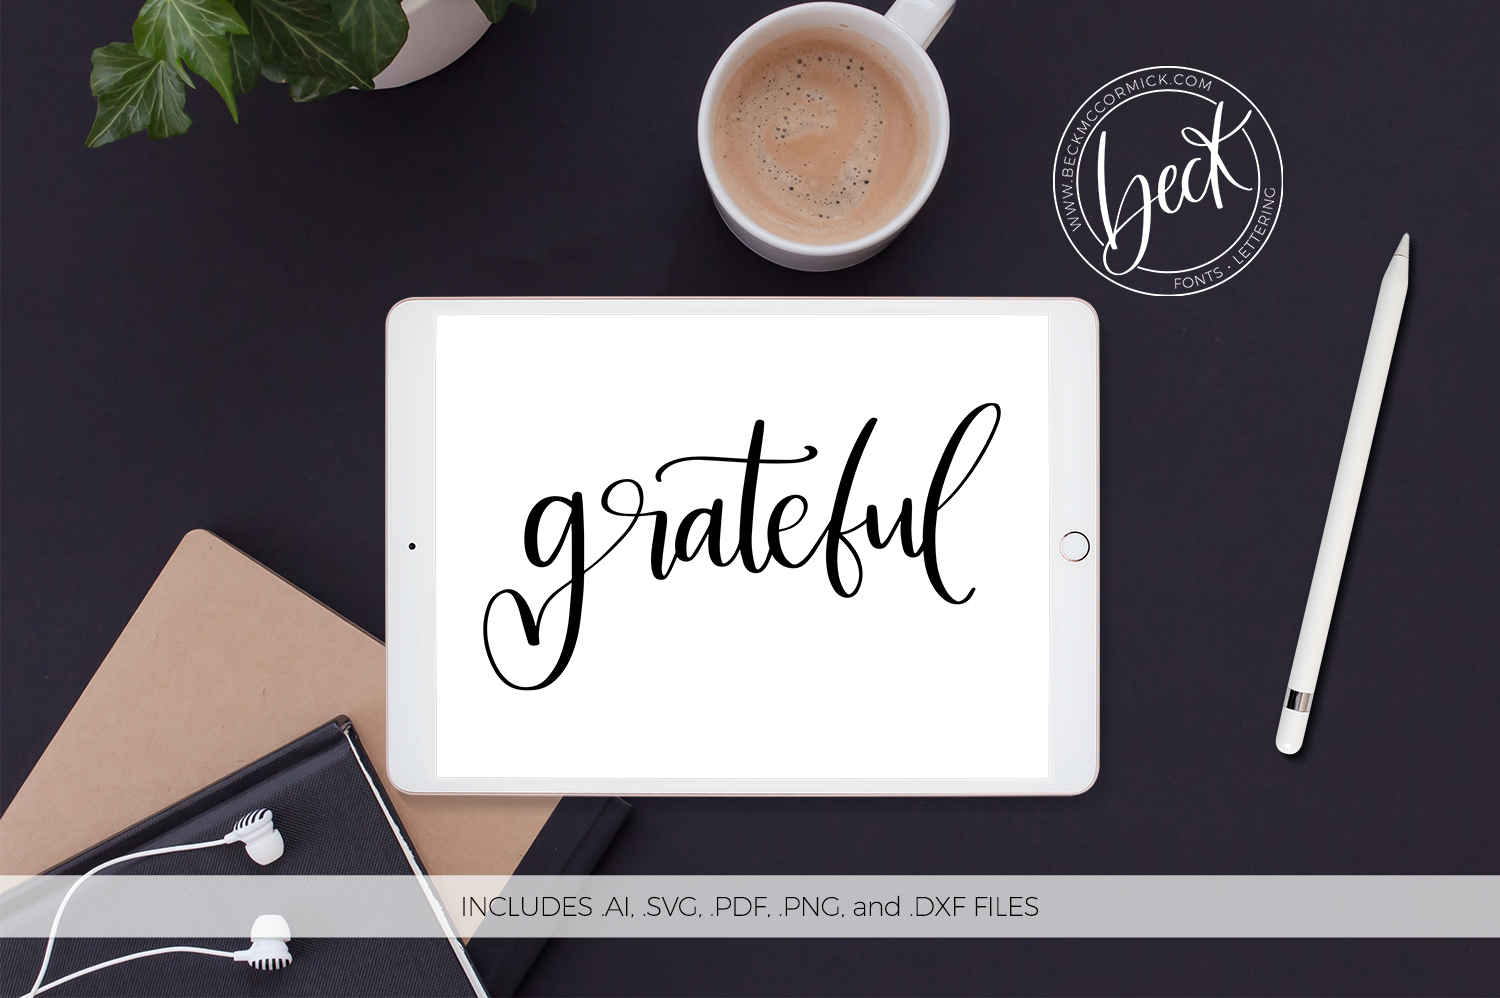 Download Free Grateful Graphic By Beckmccormick Creative Fabrica for Cricut Explore, Silhouette and other cutting machines.